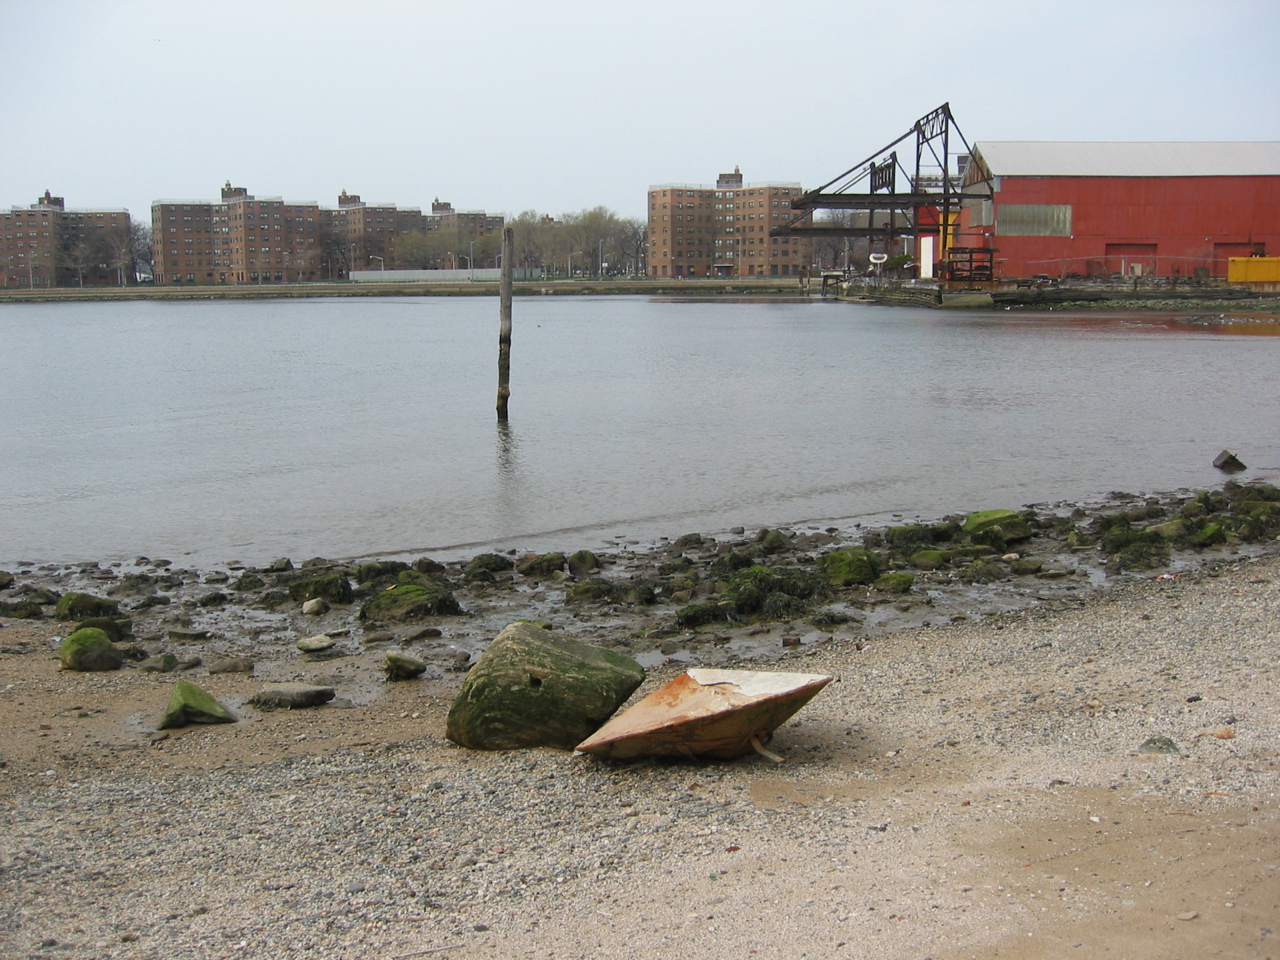 Flying saucer, 3:02pm, April 18, 2004. Near Socrates Sculpture Park, Long Island city. (We usually imagine aliens to be somewhat human-sized, but this proves differently.)